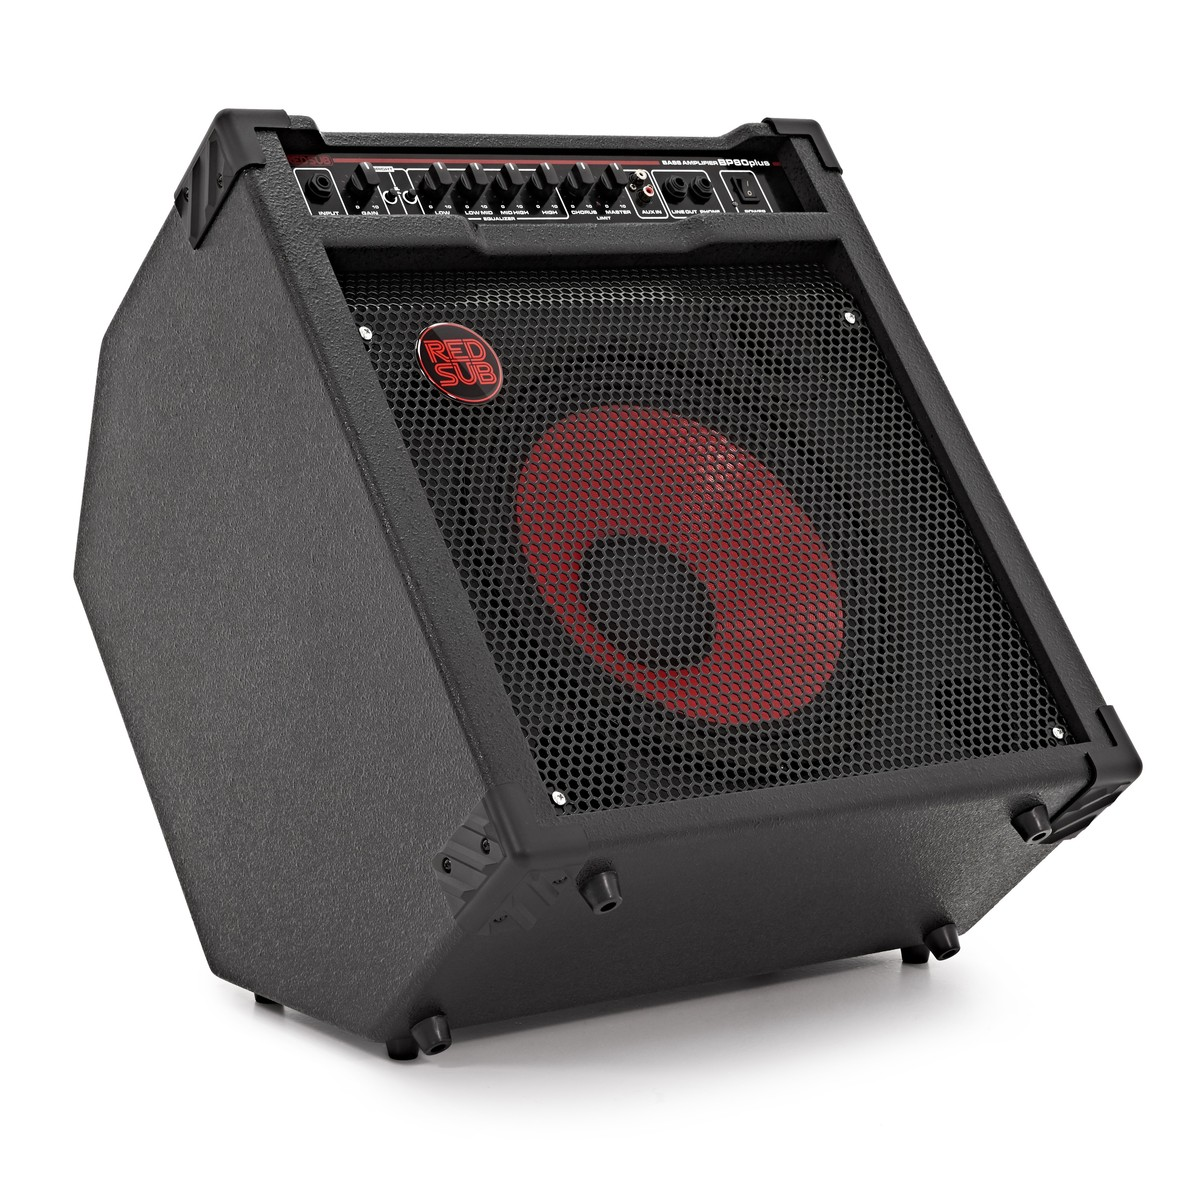 redsub bp80plus 80w bass guitar amplifier box opened at gear4music. Black Bedroom Furniture Sets. Home Design Ideas